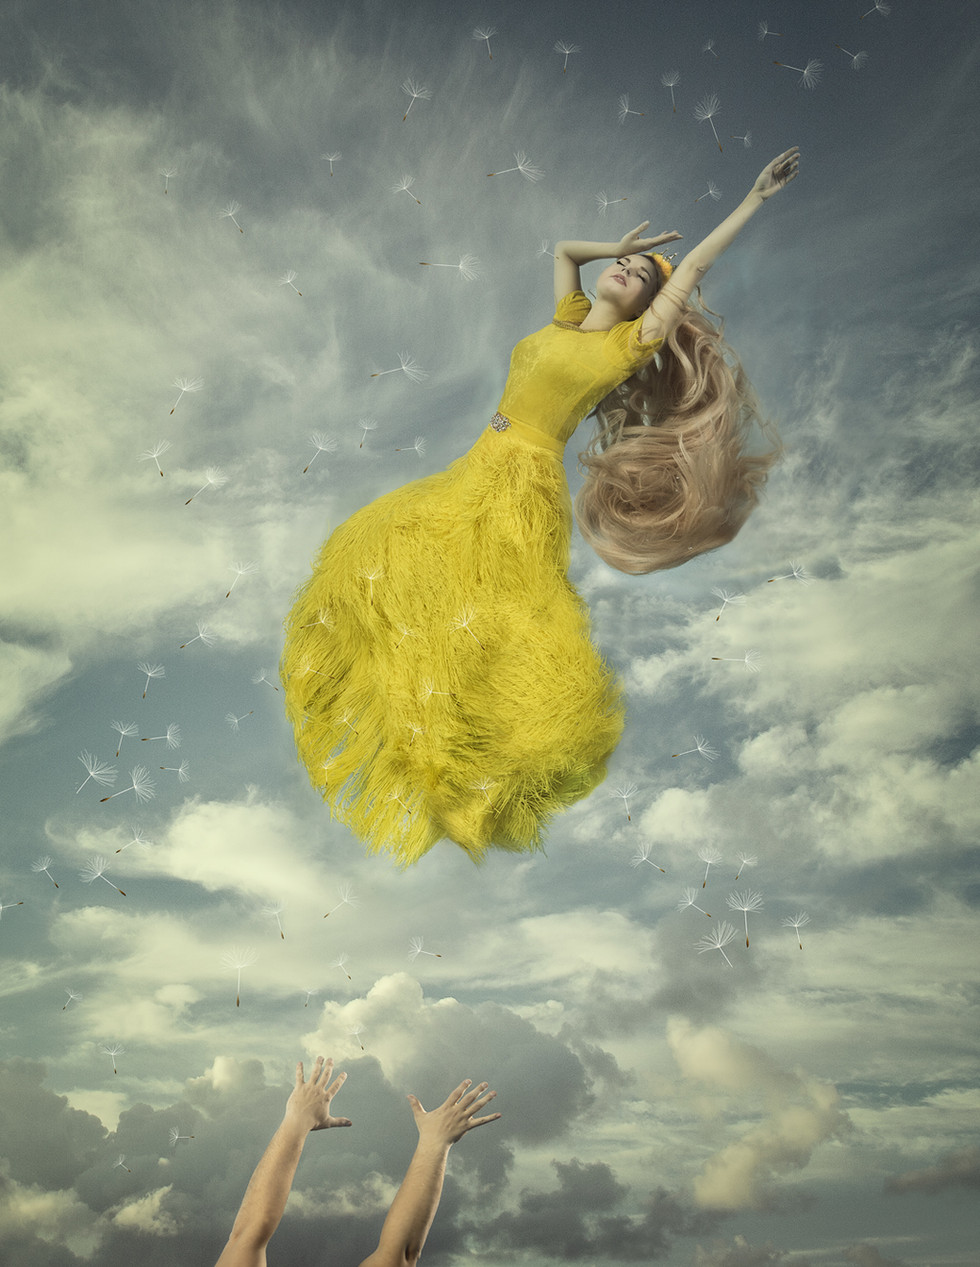 Princess Dandelion / And the wind blows her away